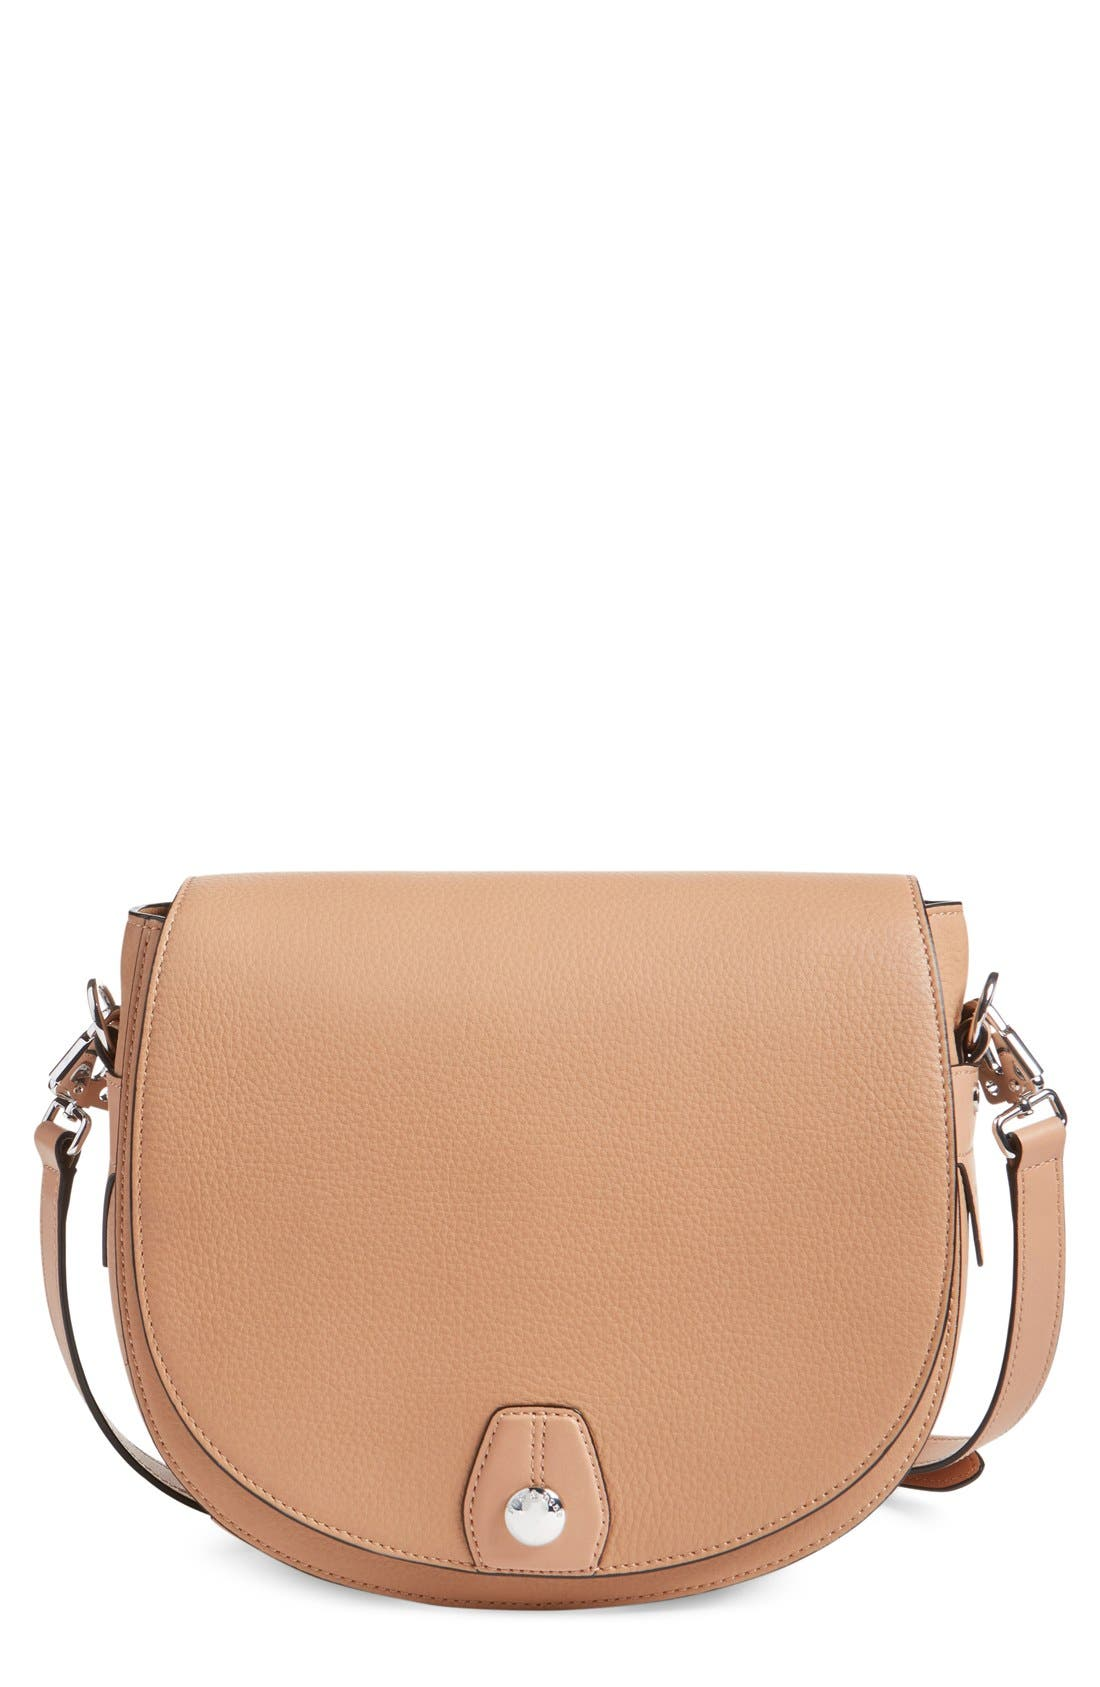 Alternate Image 1 Selected - rag & bone 'Flight' Leather Crossbody Saddle Bag